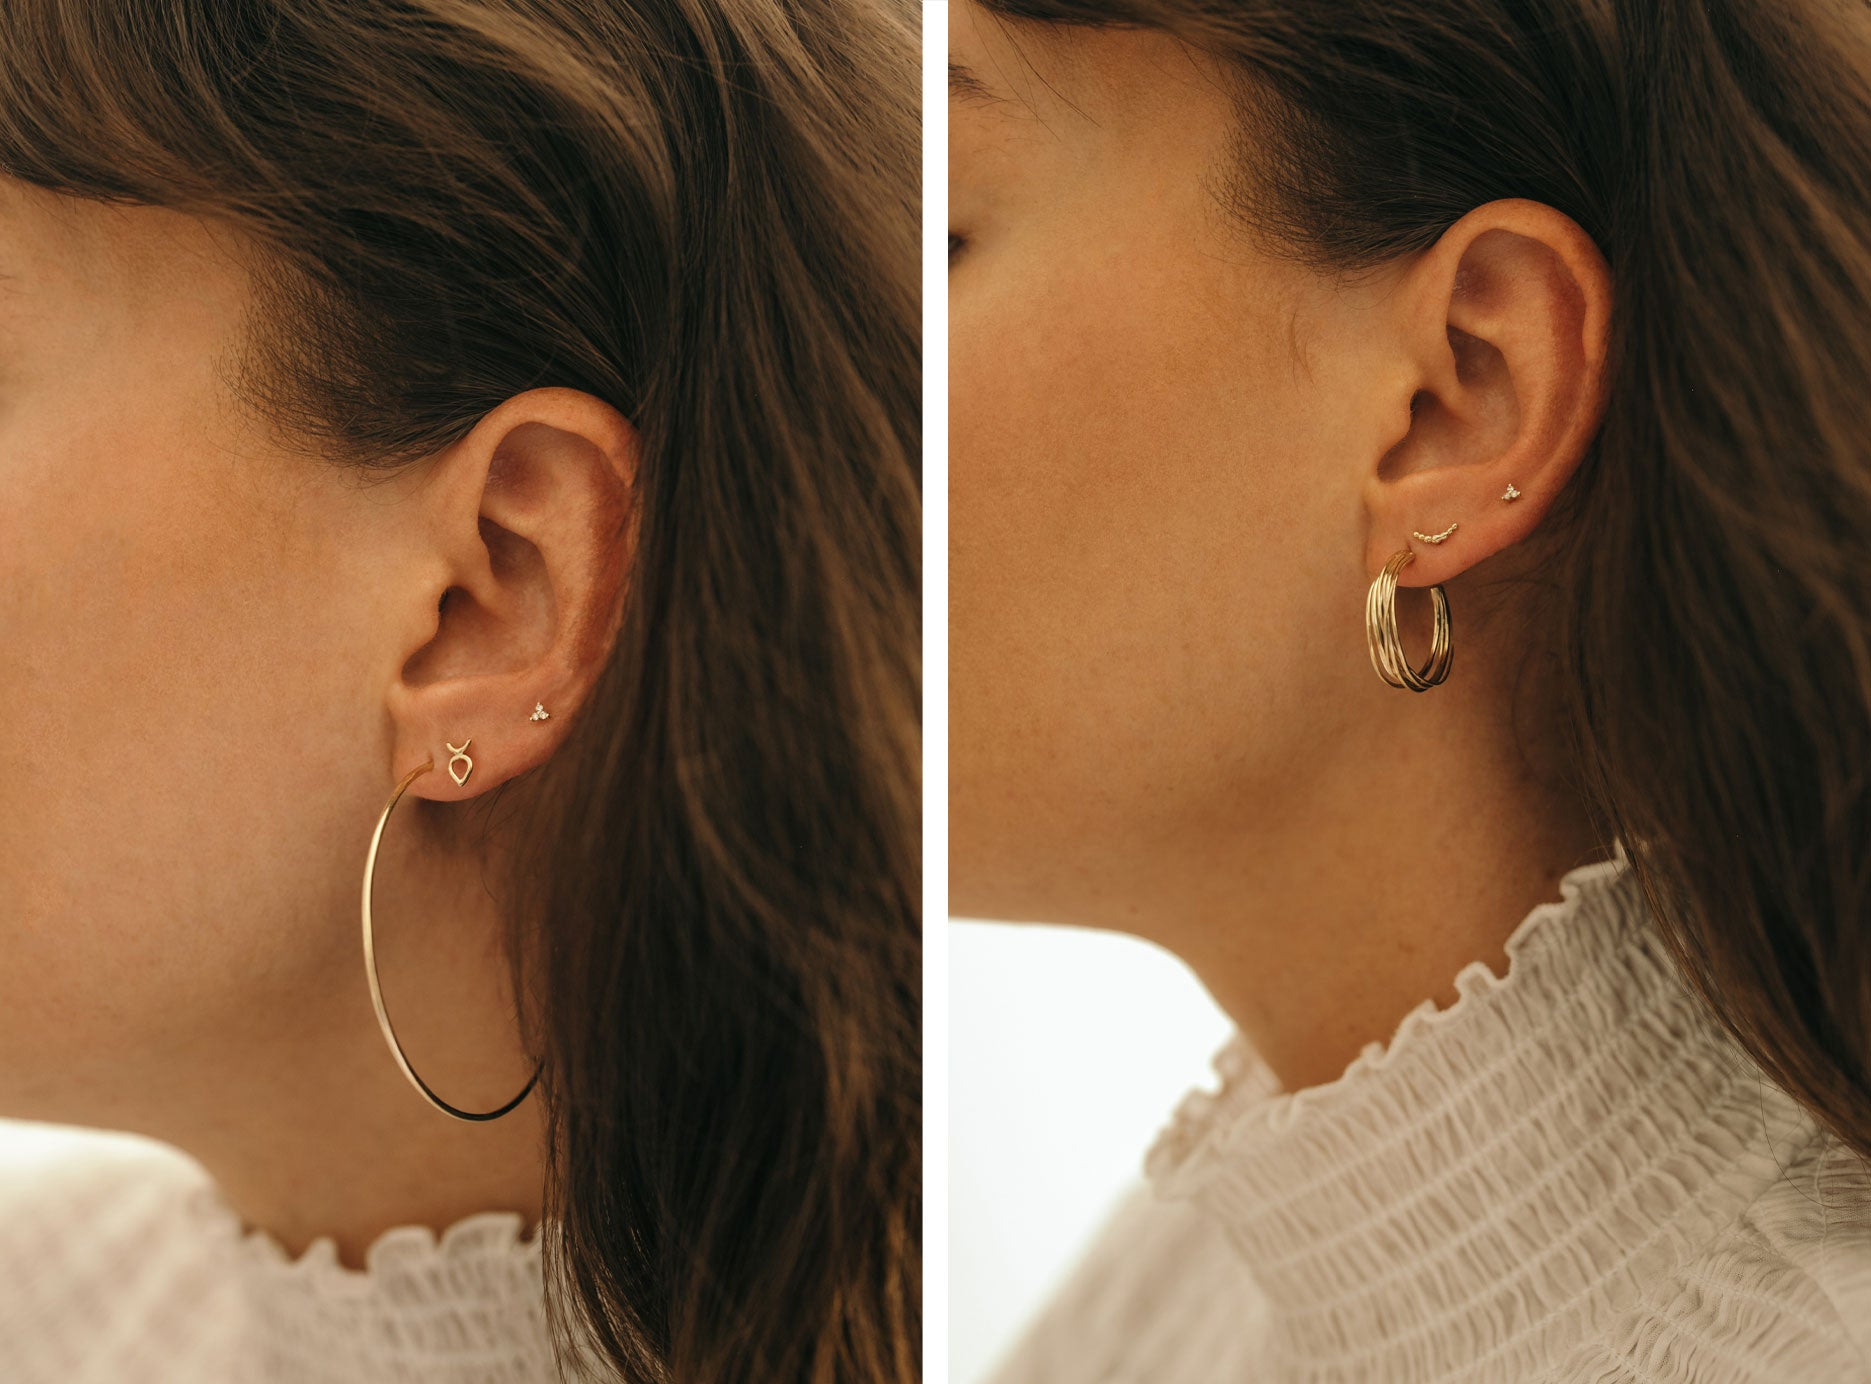 Ally wears (left to right): Small Open Hoops, Leotie Studs, Kalani Studs, Kamali Hoops, Crescent Studs, Kalani Studs.